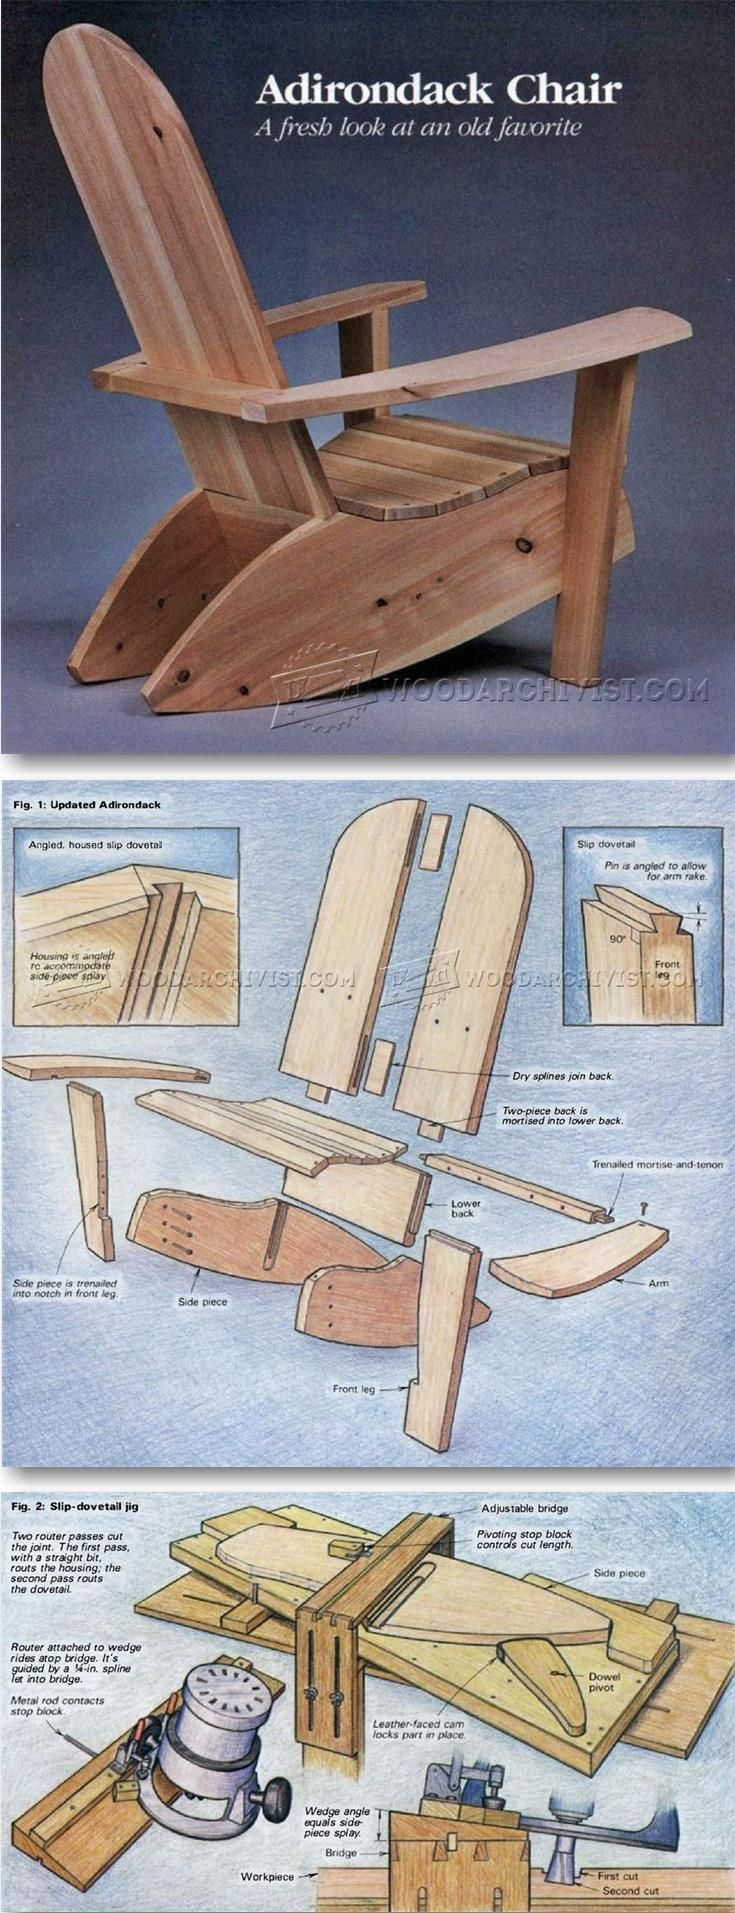 Corner Cabinet Furniture Dining Room: Pin By MorningChores On Woodworking